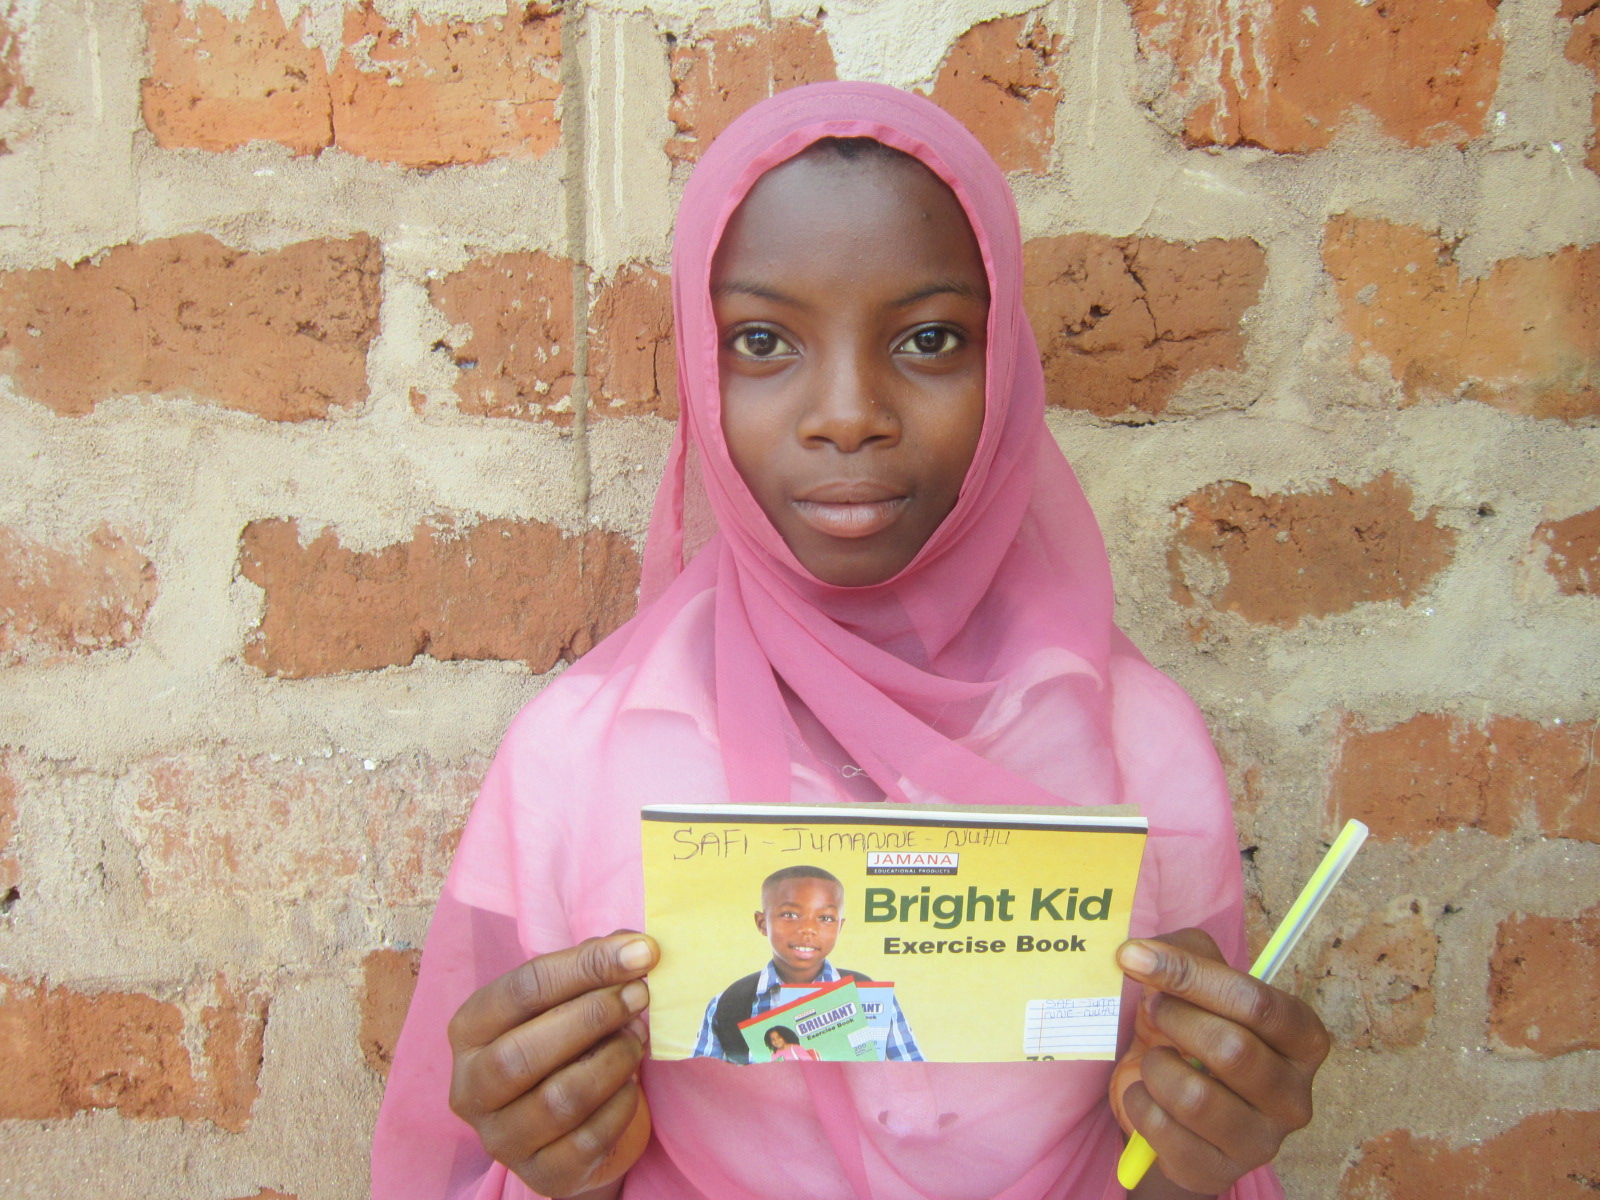 Our student, Safi